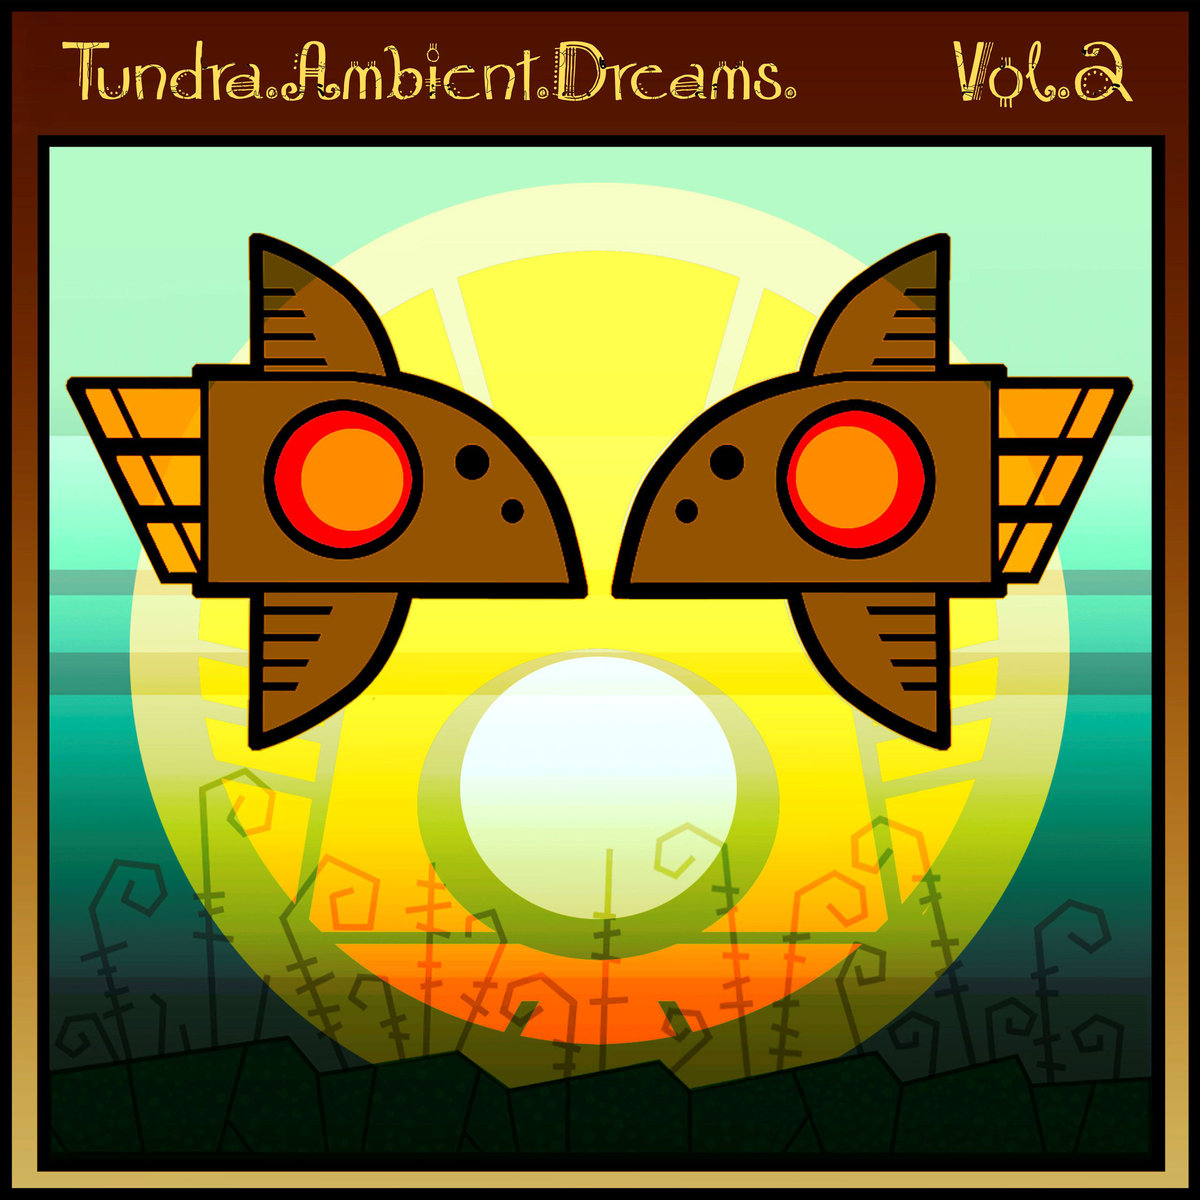 Ellipsis II - Tundra.Ambient.Dreams. Vol.2 @ 'Ellipsis II - Tundra.Ambient.Dreams. Vol.2' album (electronic, ambient)